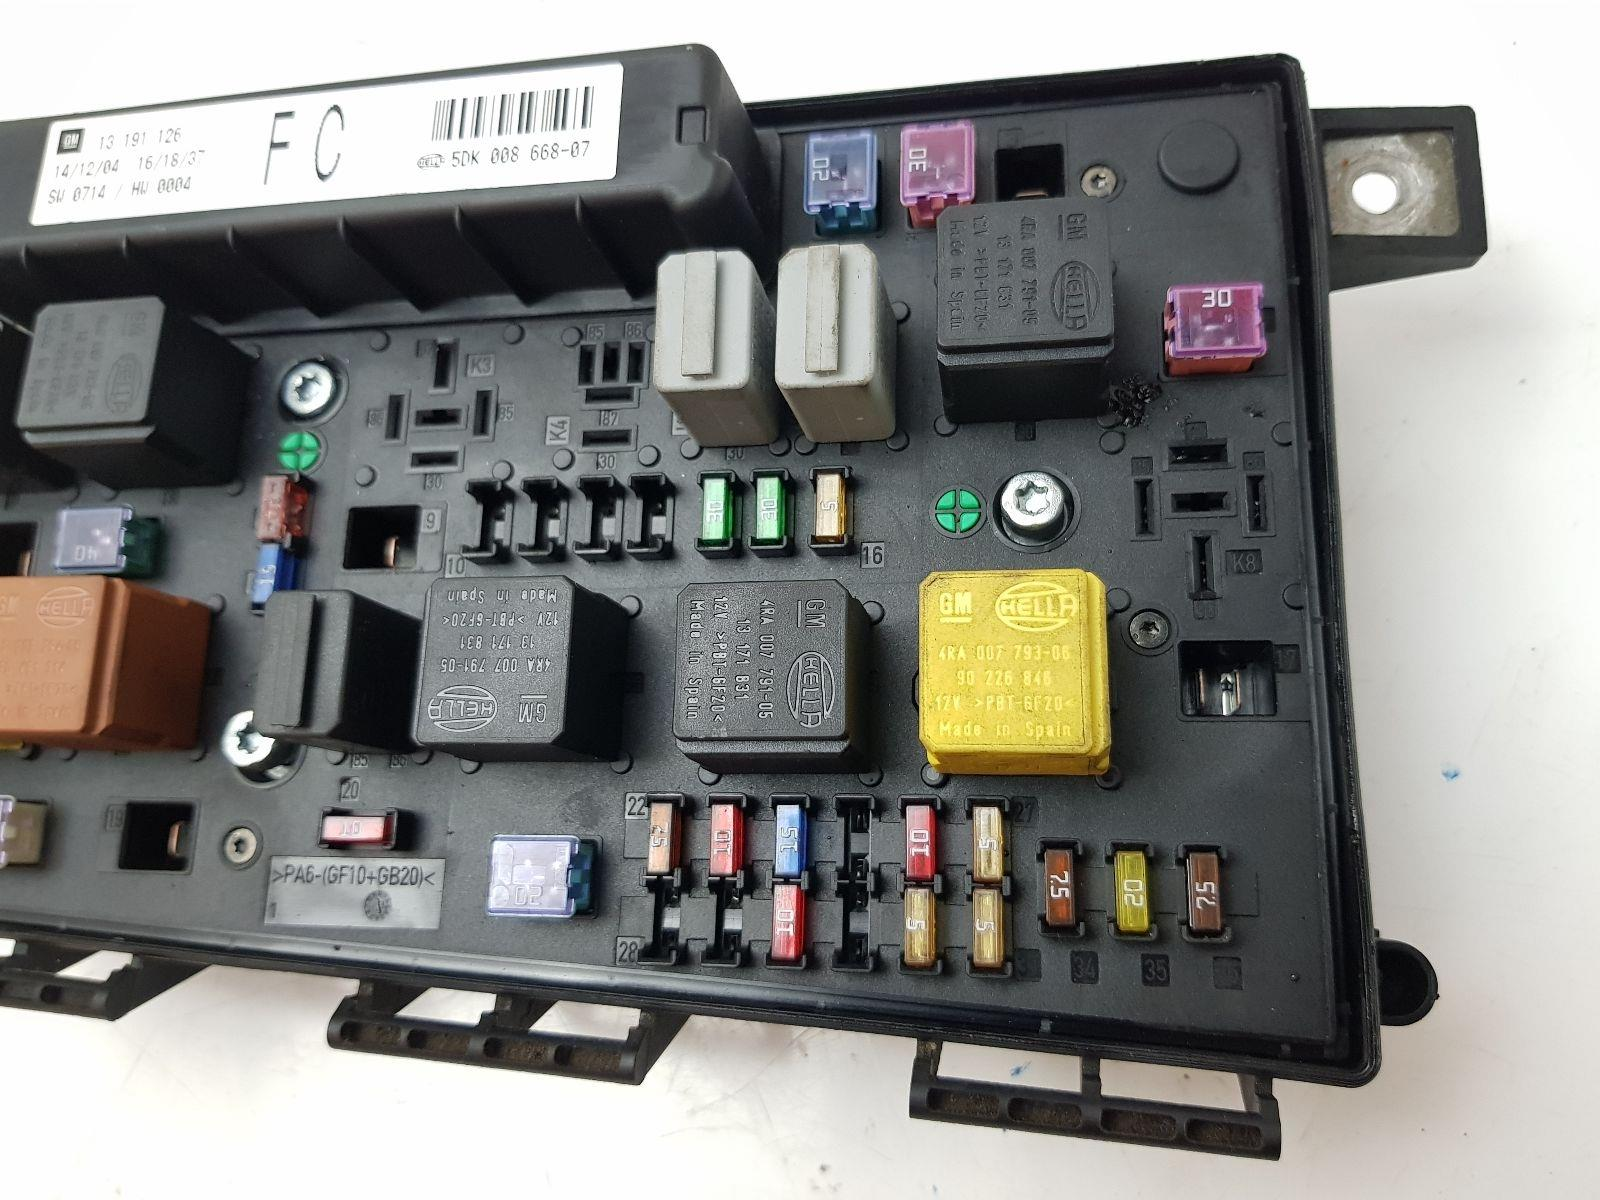 Fuse Box On A Vauxhall Astra 2004 vauxhall astra fuse box ... Vauxhall Corsa Fuse Box Cigarette Lighter on land rover discovery fuse box, bmw 5 series fuse box, bmw e30 fuse box, vw golf fuse box, fiat stilo fuse box, volvo s80 fuse box, vw passat fuse box,